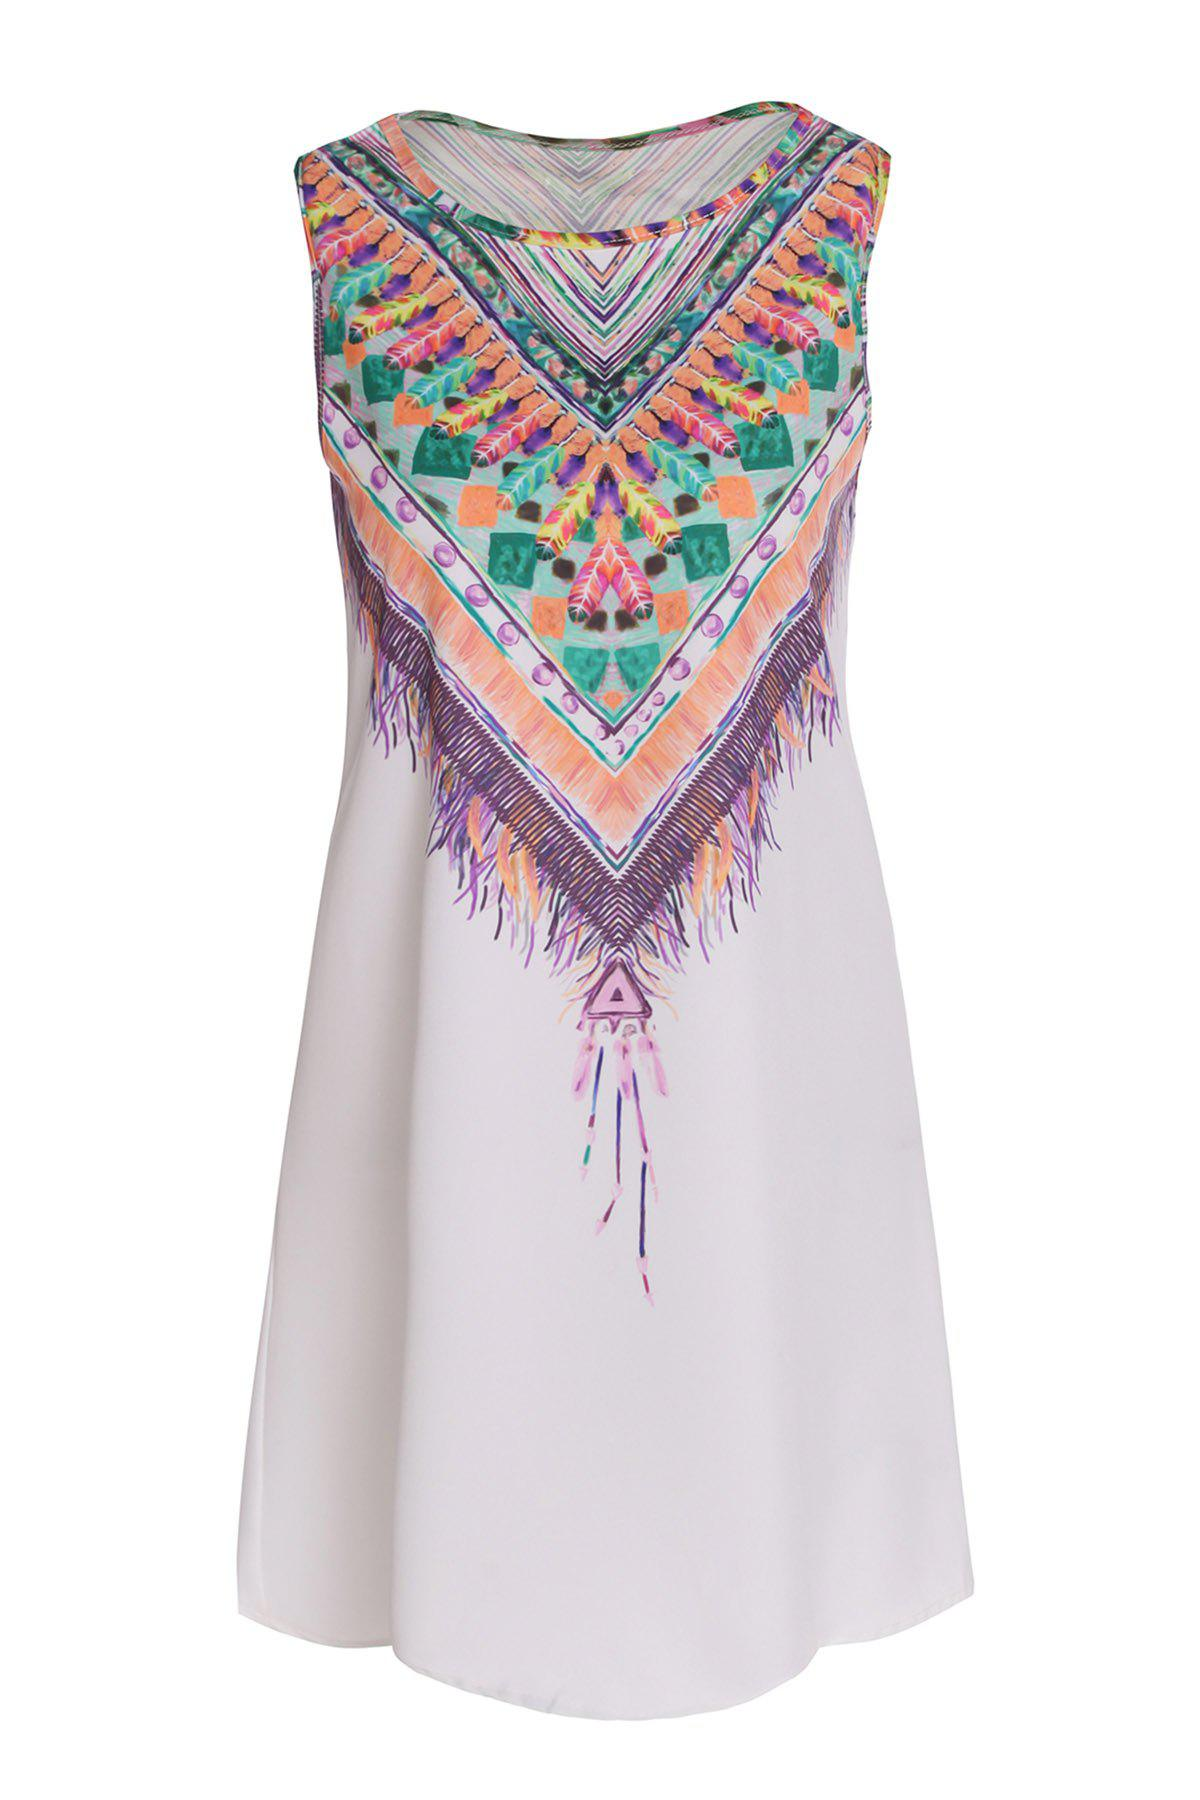 Buy Ethnic Style Scoop Neck Sleeveless Printed Women's Dress